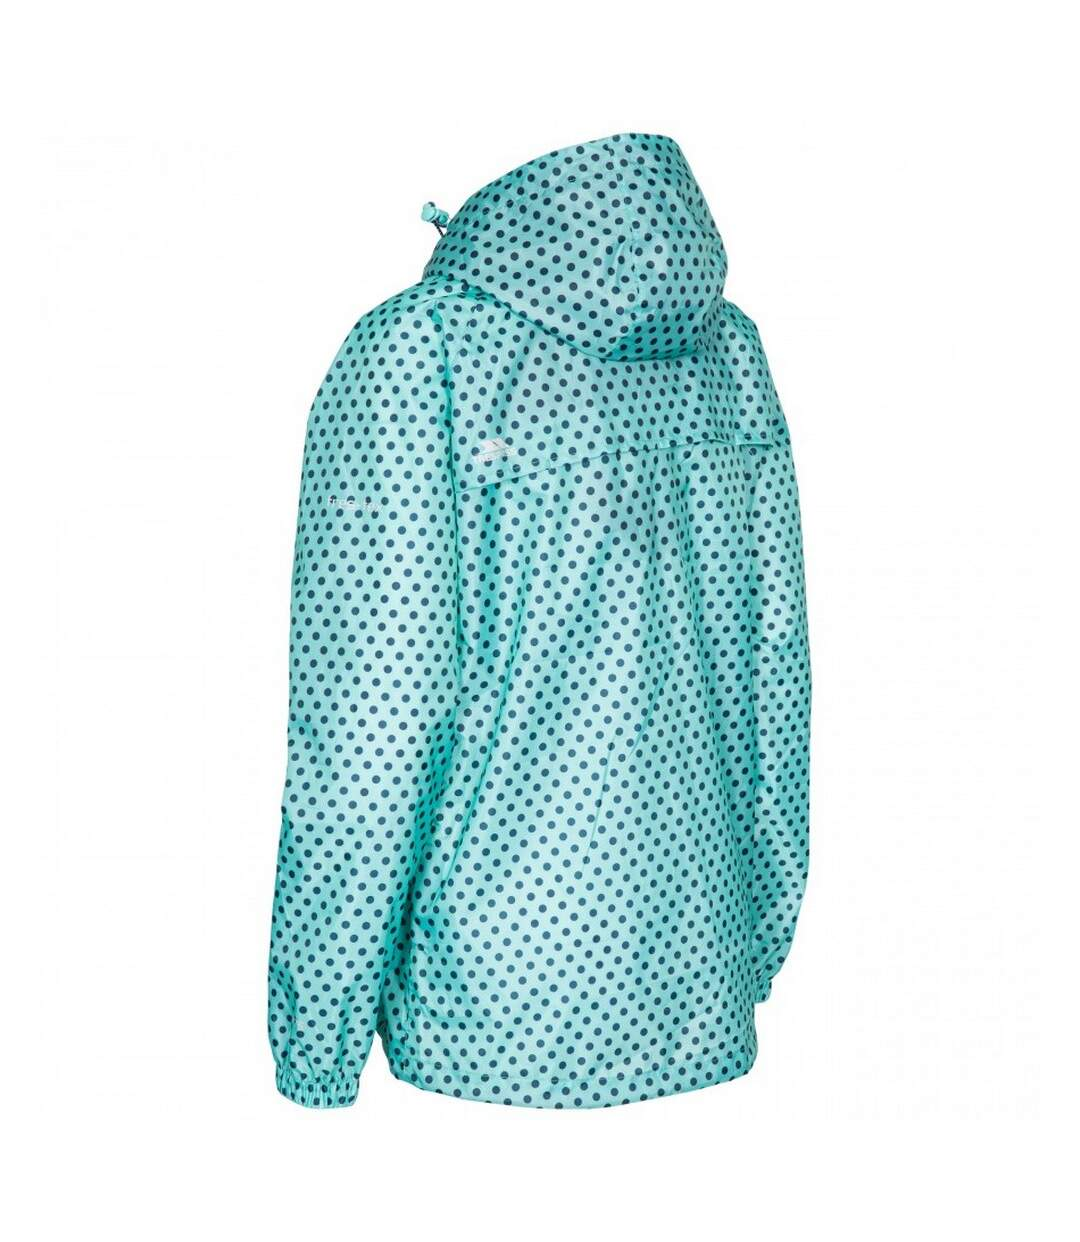 Trespass Womens/Ladies Indulge Waterproof Packaway Jacket (Tropical Print) - UTTP4649